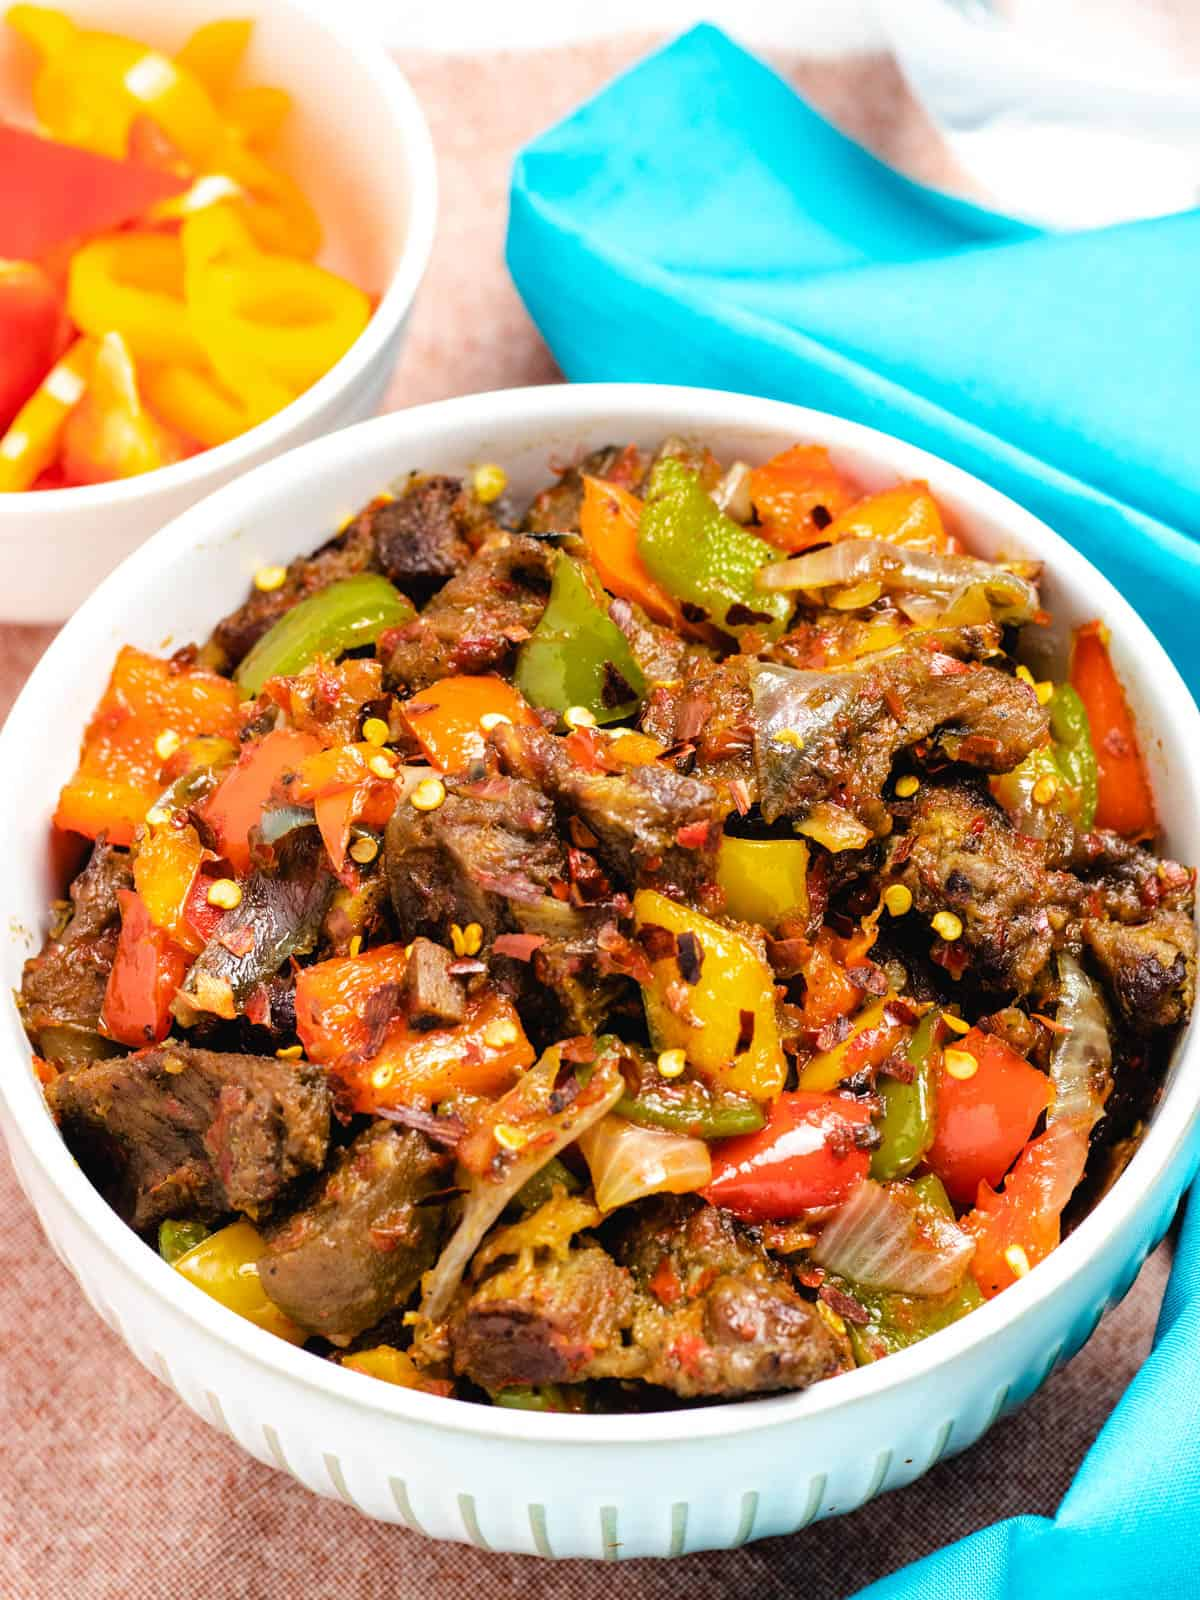 peppered goat meat with red and green bell peppers